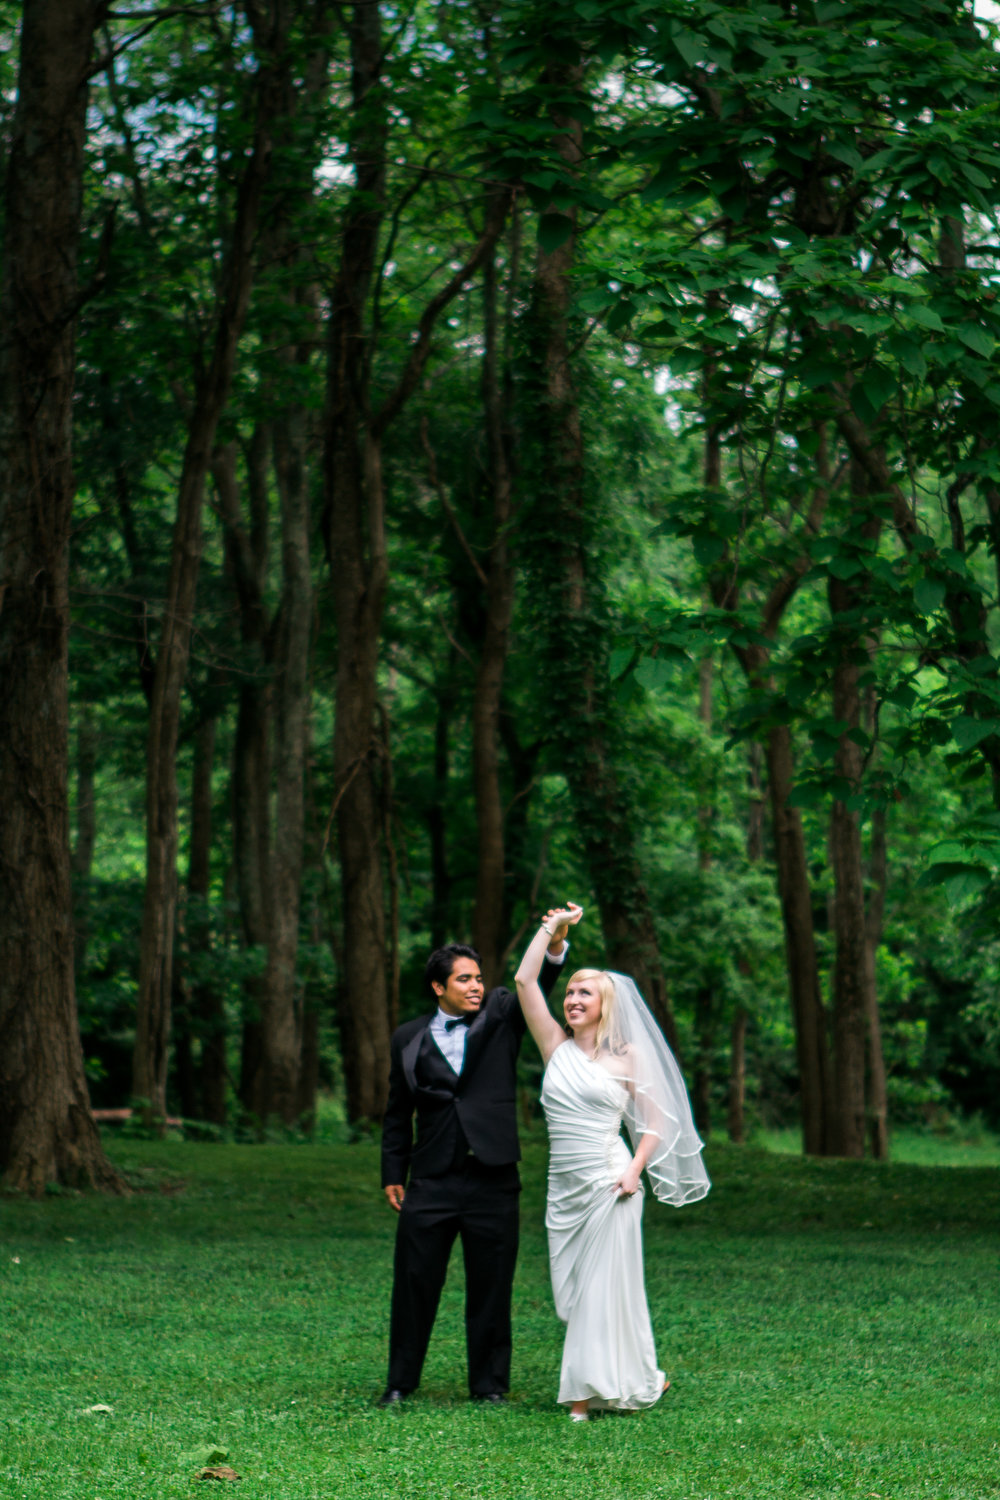 Richmond Kentucky Wedding Photographer - Ariana Jordan Photography -4-2.jpg